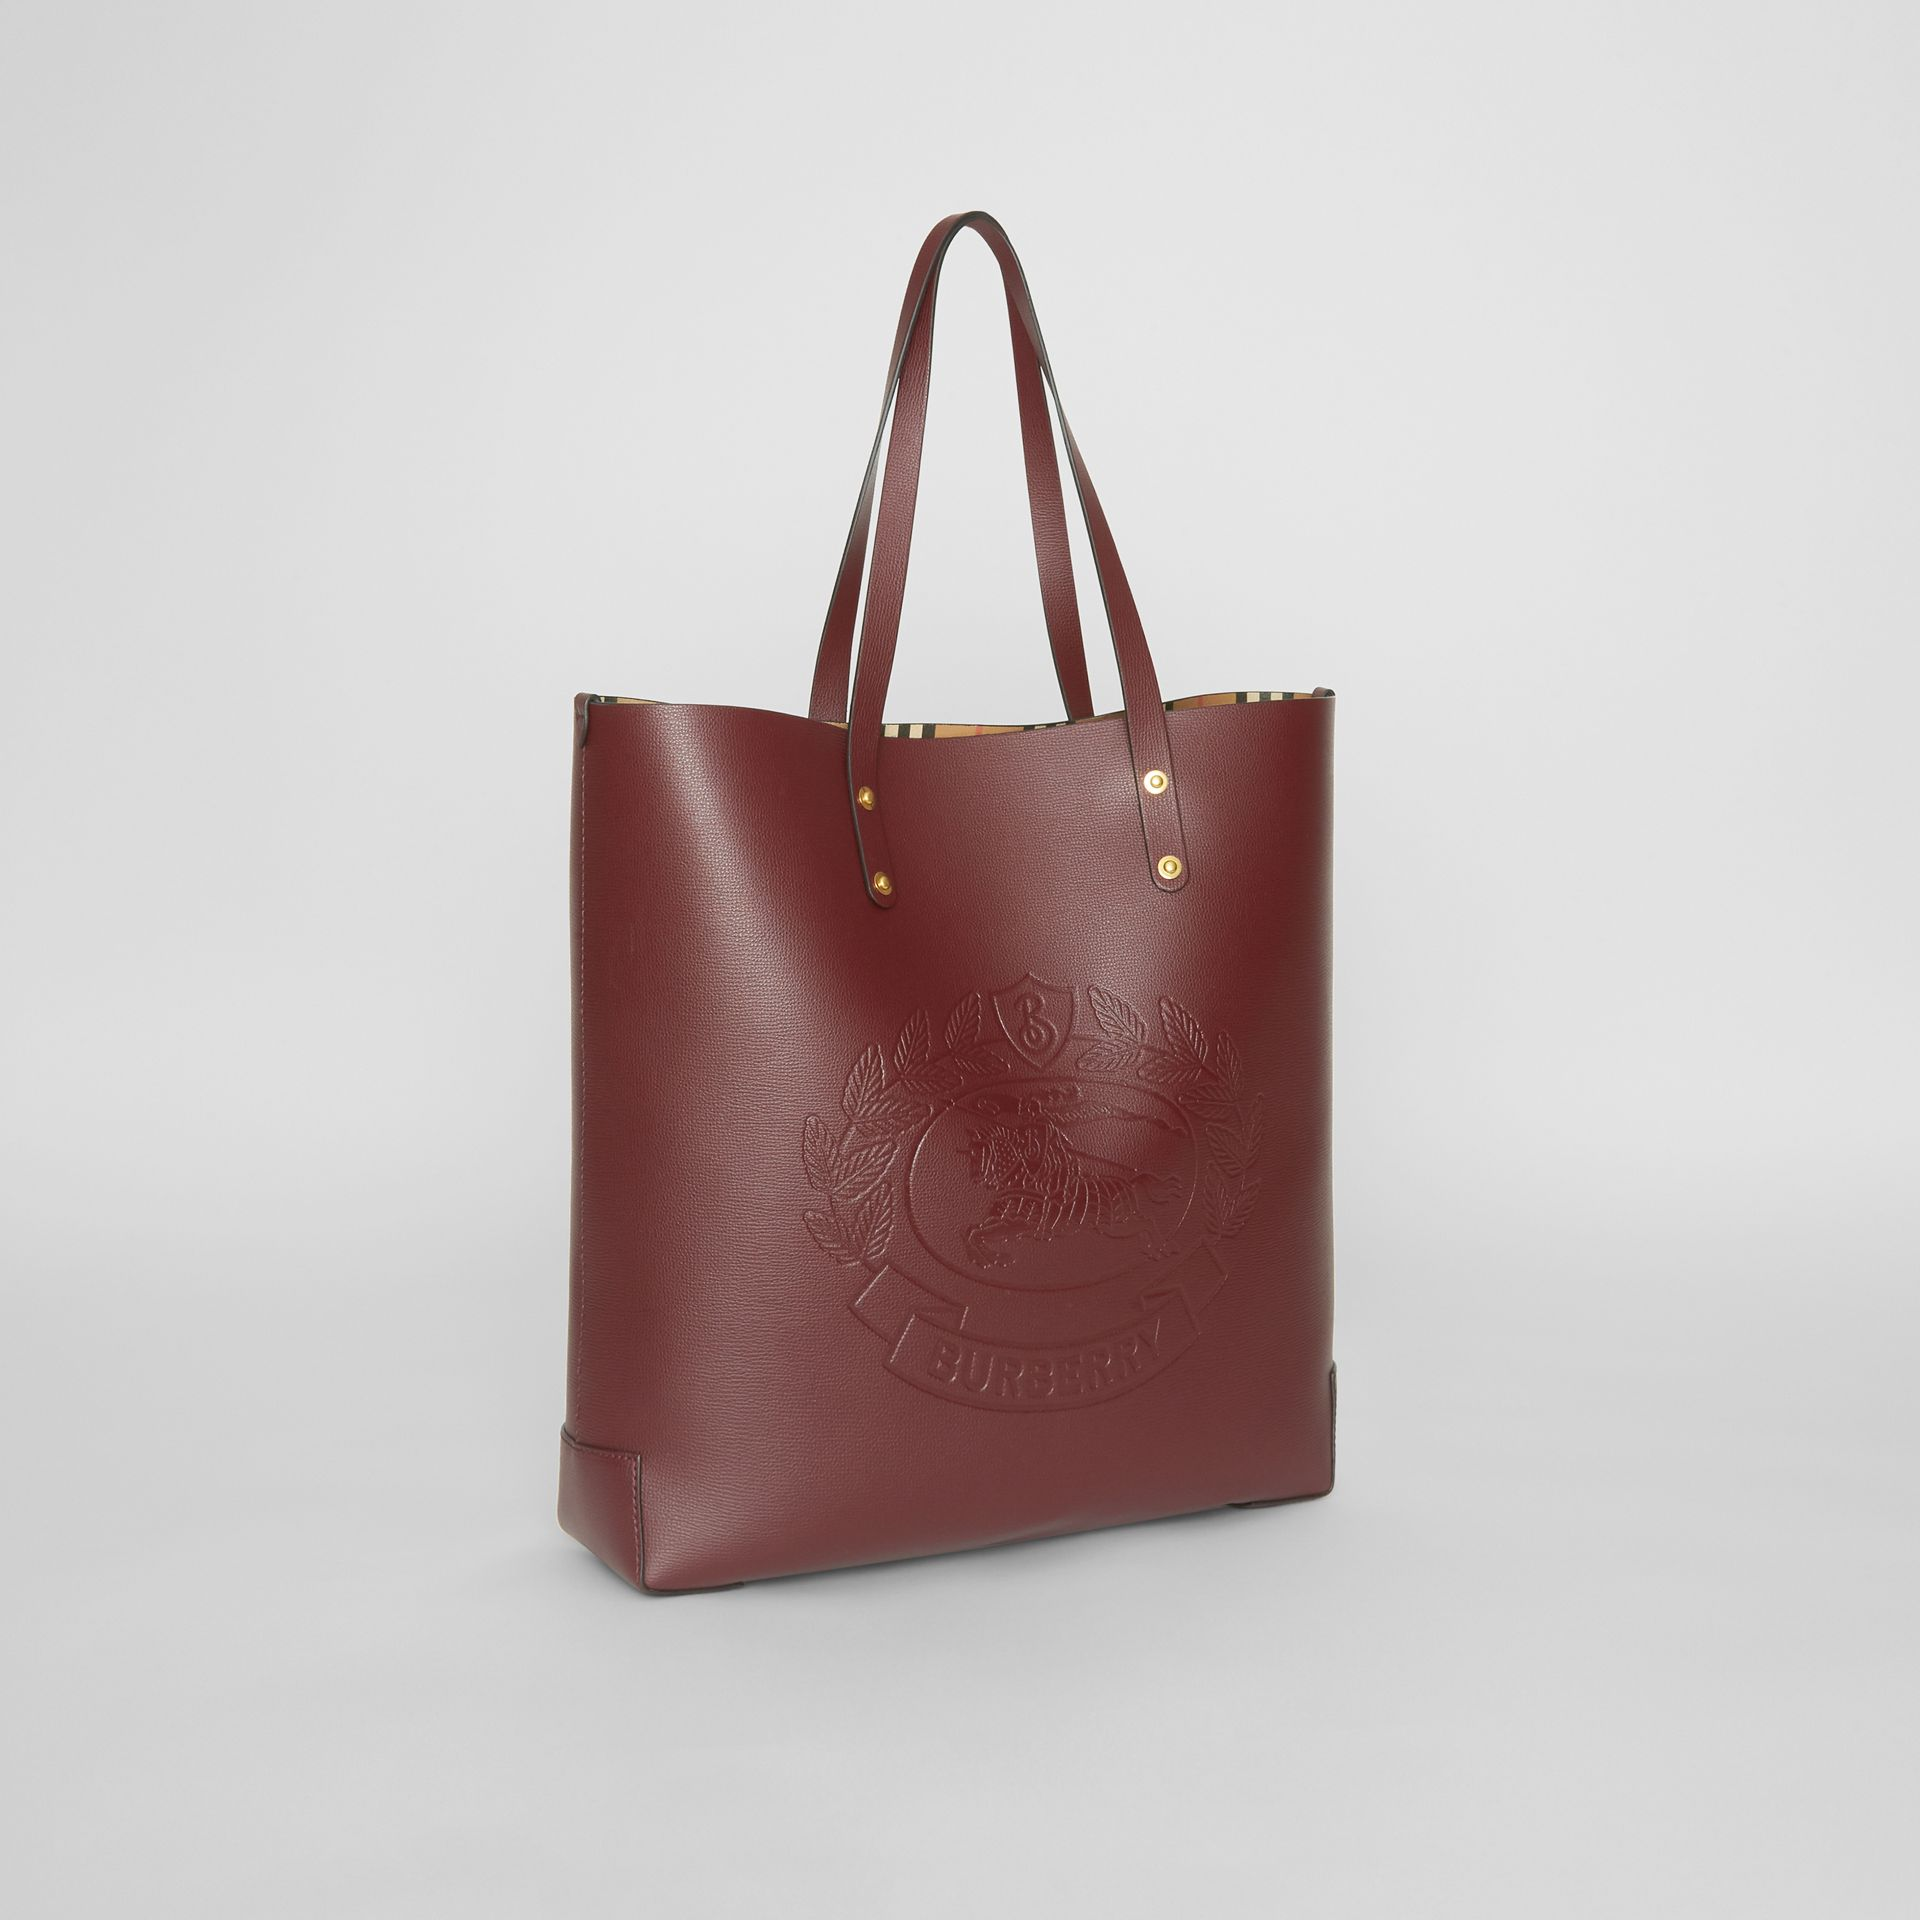 Embossed Crest Leather Tote in Burgundy | Burberry - gallery image 6